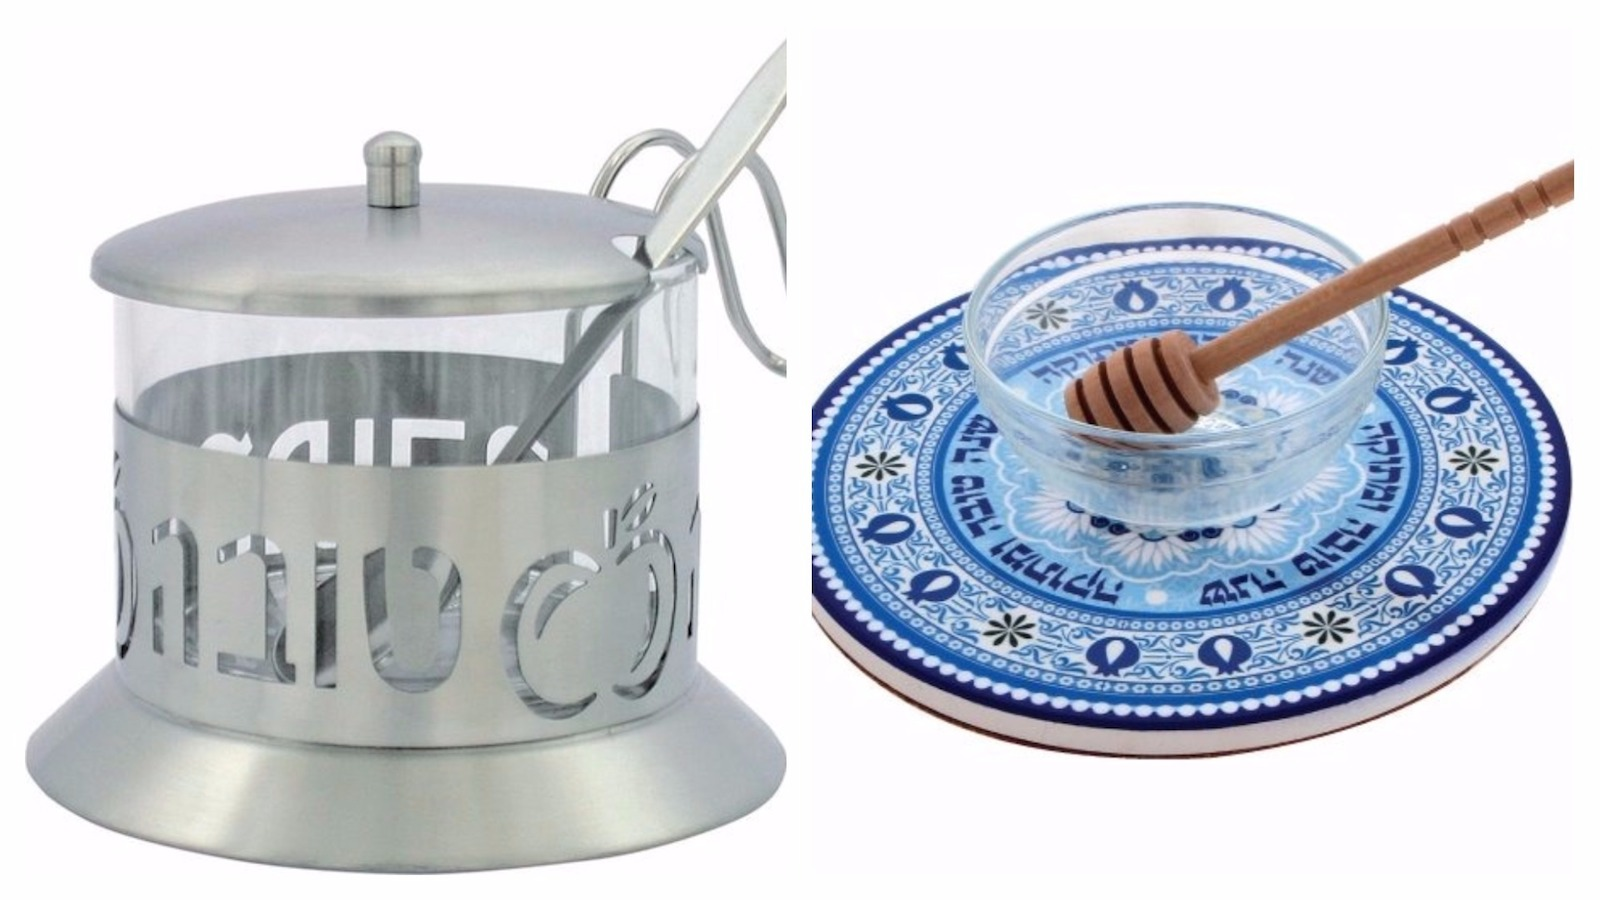 Rosh hashanah gift guide my jewish learning it is traditional to dip apples in honey on rosh hashanah and a special honey dish can add extra beauty to the practice we like this stainless steel and kristyandbryce Choice Image